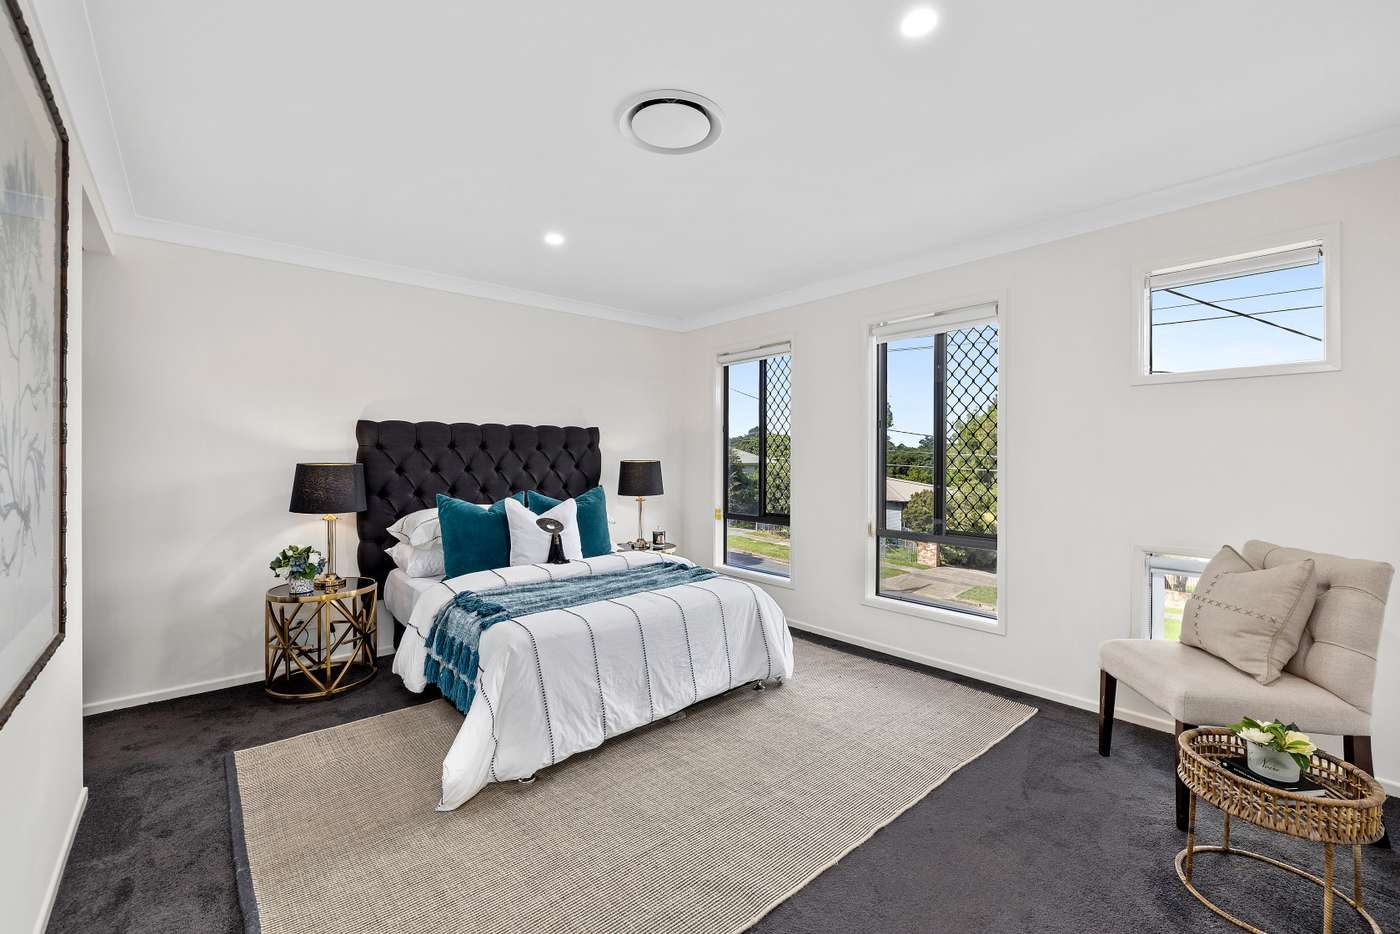 Fifth view of Homely house listing, 163 Gallipoli Road, Carina Heights QLD 4152